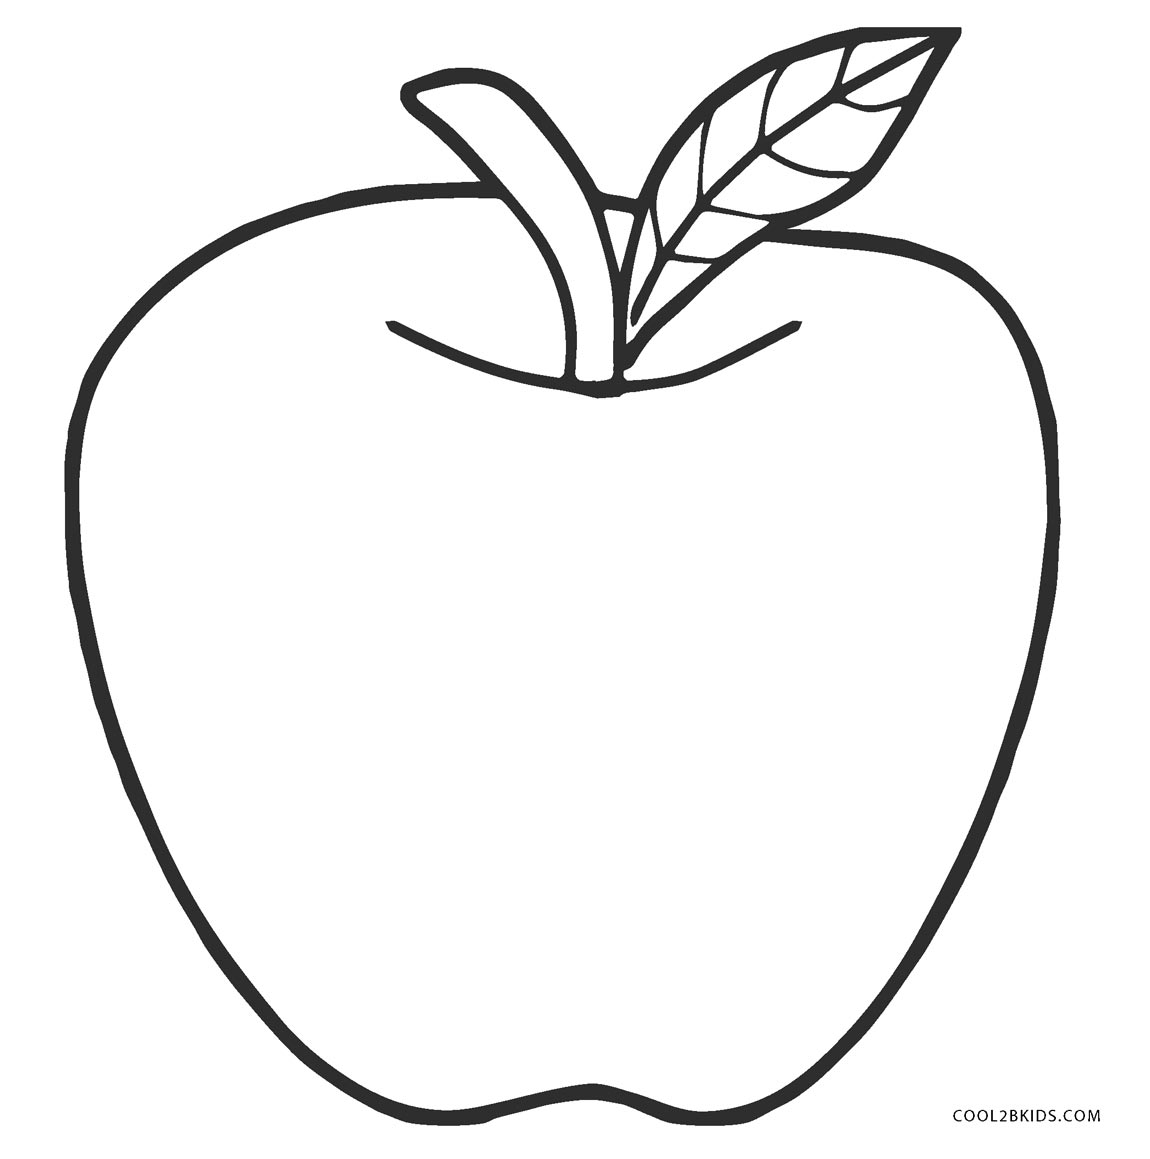 coloring picture of an apple 7 best printable apple template preschool printableecom of picture coloring apple an